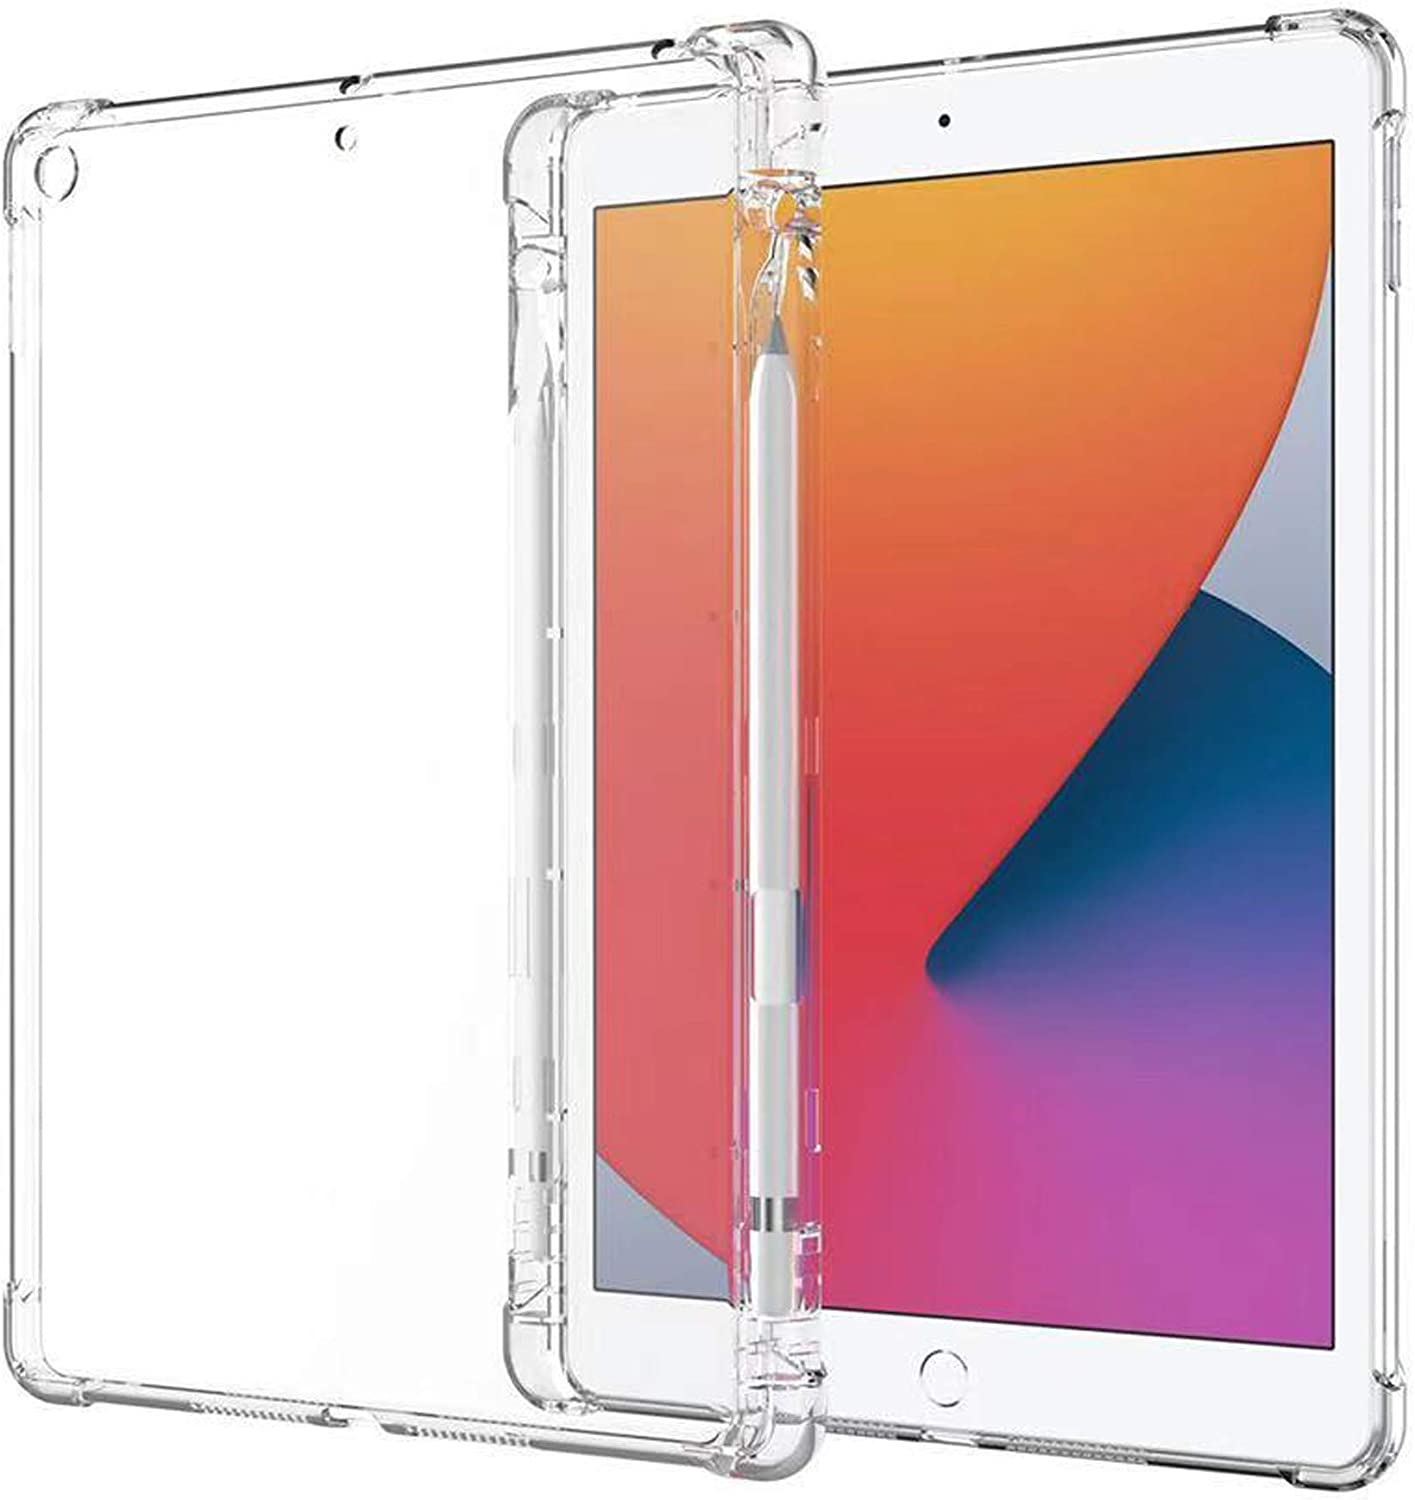 SFFINE Clear Case for iPad 10.2 7th Generation 2019 / 8th Generation 2020 with Pencil Holder, Shockproof Thin Slim Transparent Flexible TPU Gel Silicon Back Cover Protective Shell Fit iPad 10.2 Inch